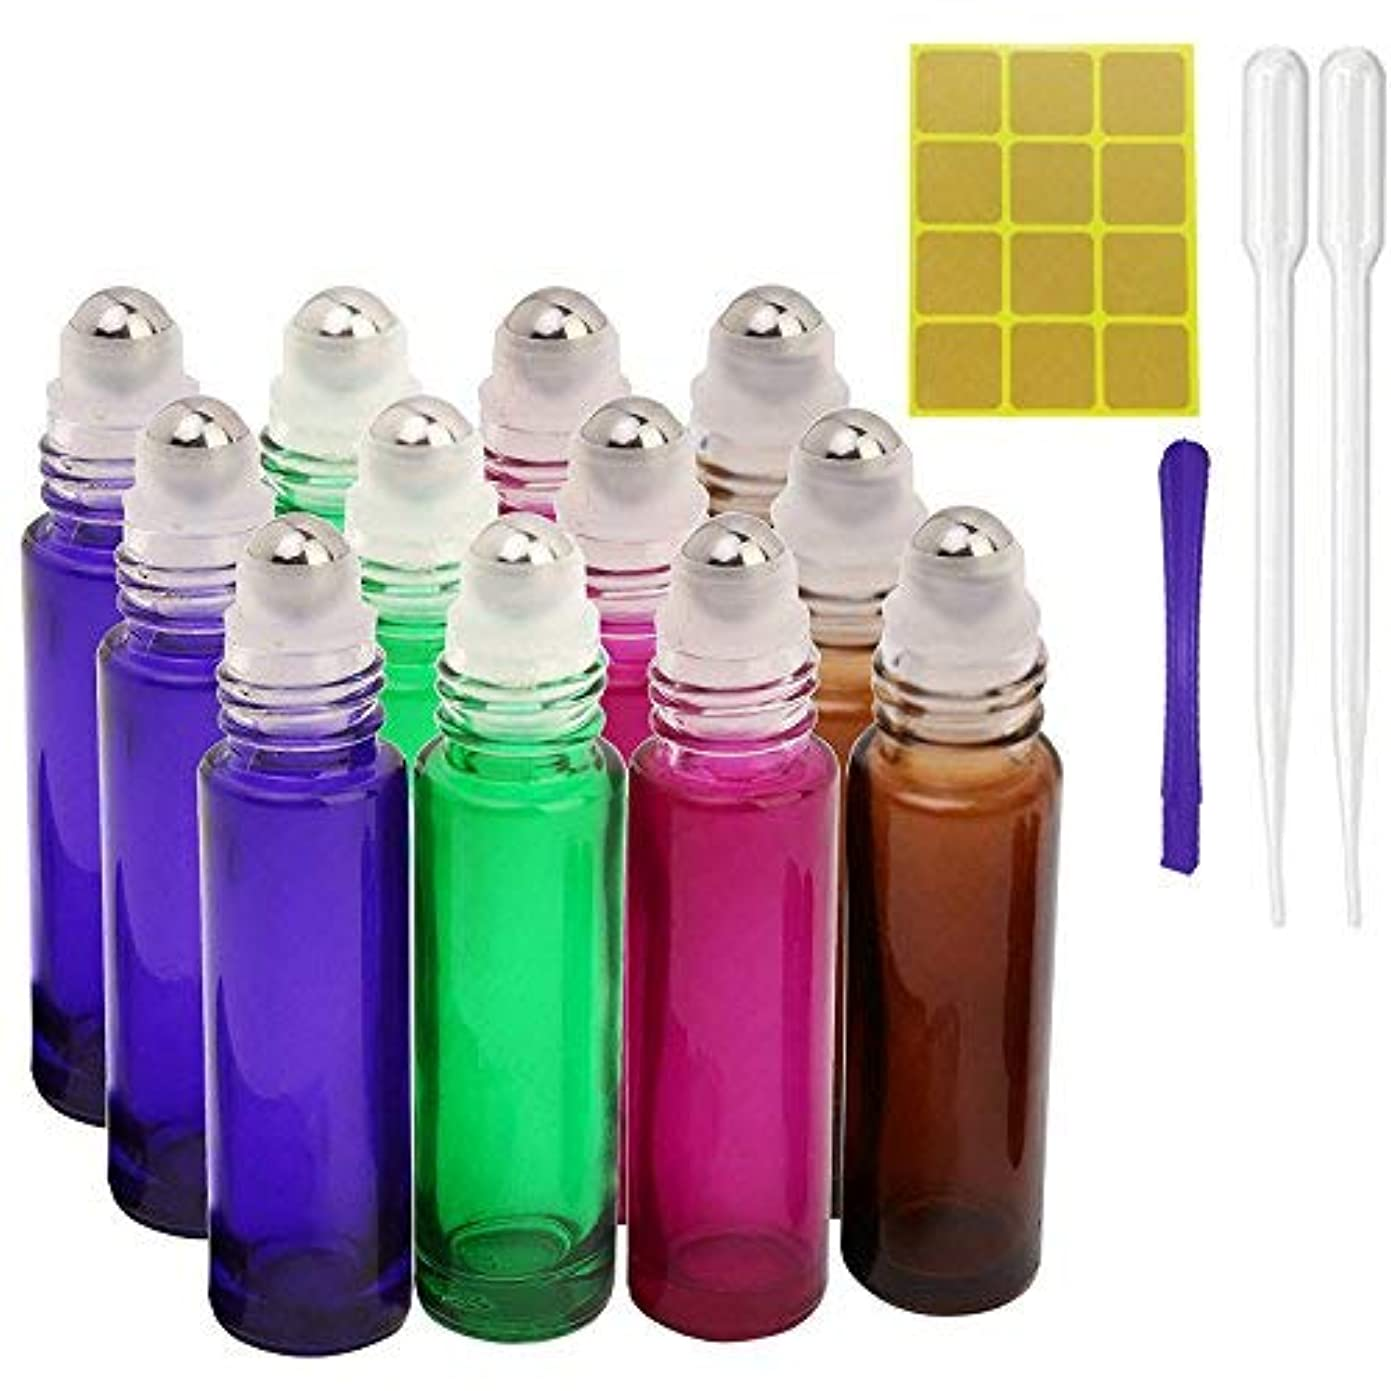 一般宙返り批判する12, 10ml Roller Bottles for Essential Oils - Glass Refillable Roller on Bottles with 1 Opener, 2 Droppers, 24...